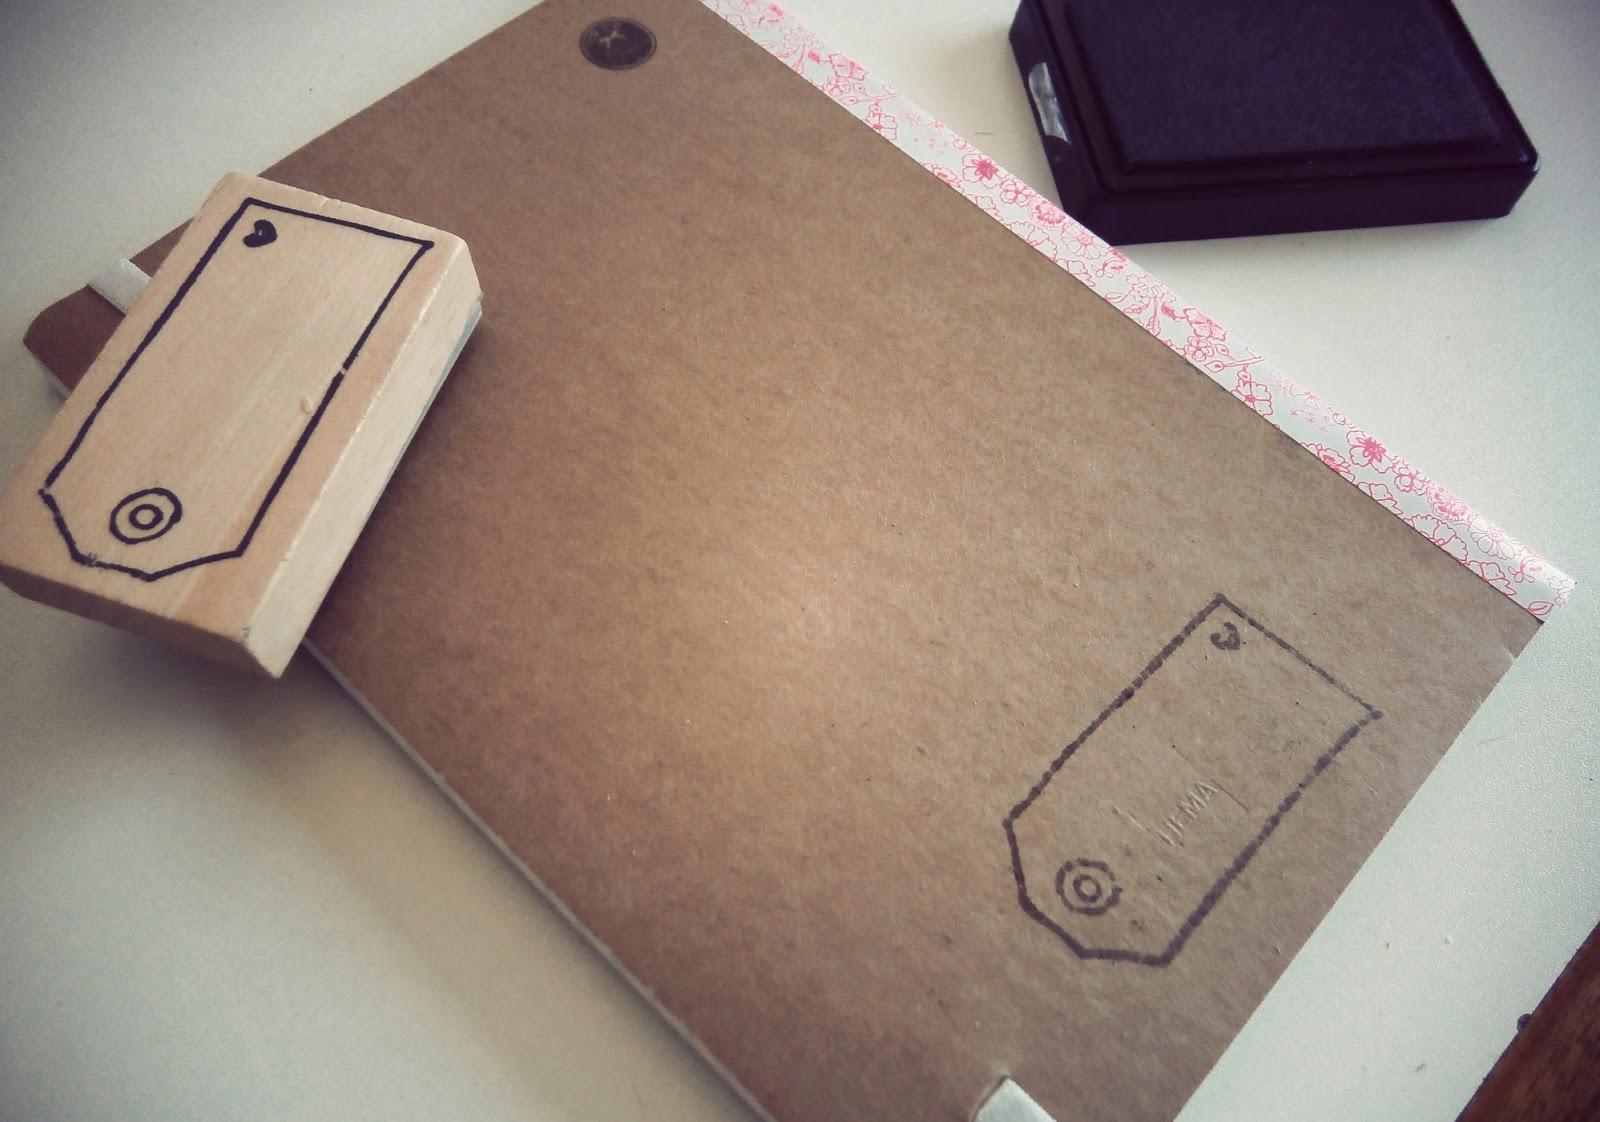 [DIY] MON LITTLE CARNET